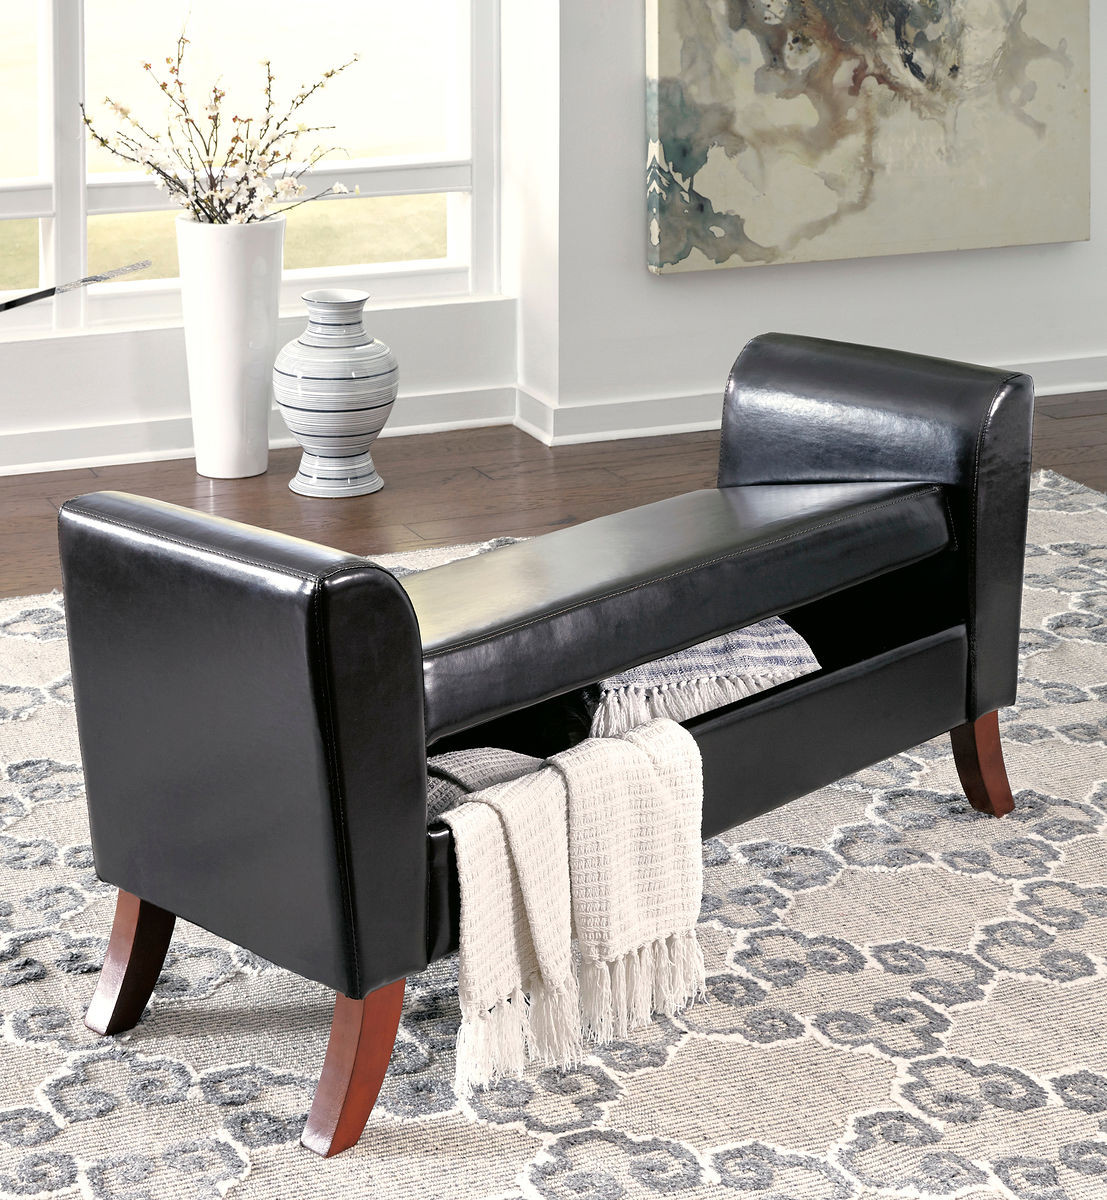 Groovy Benches Brown Upholstered Storage Bench Creativecarmelina Interior Chair Design Creativecarmelinacom